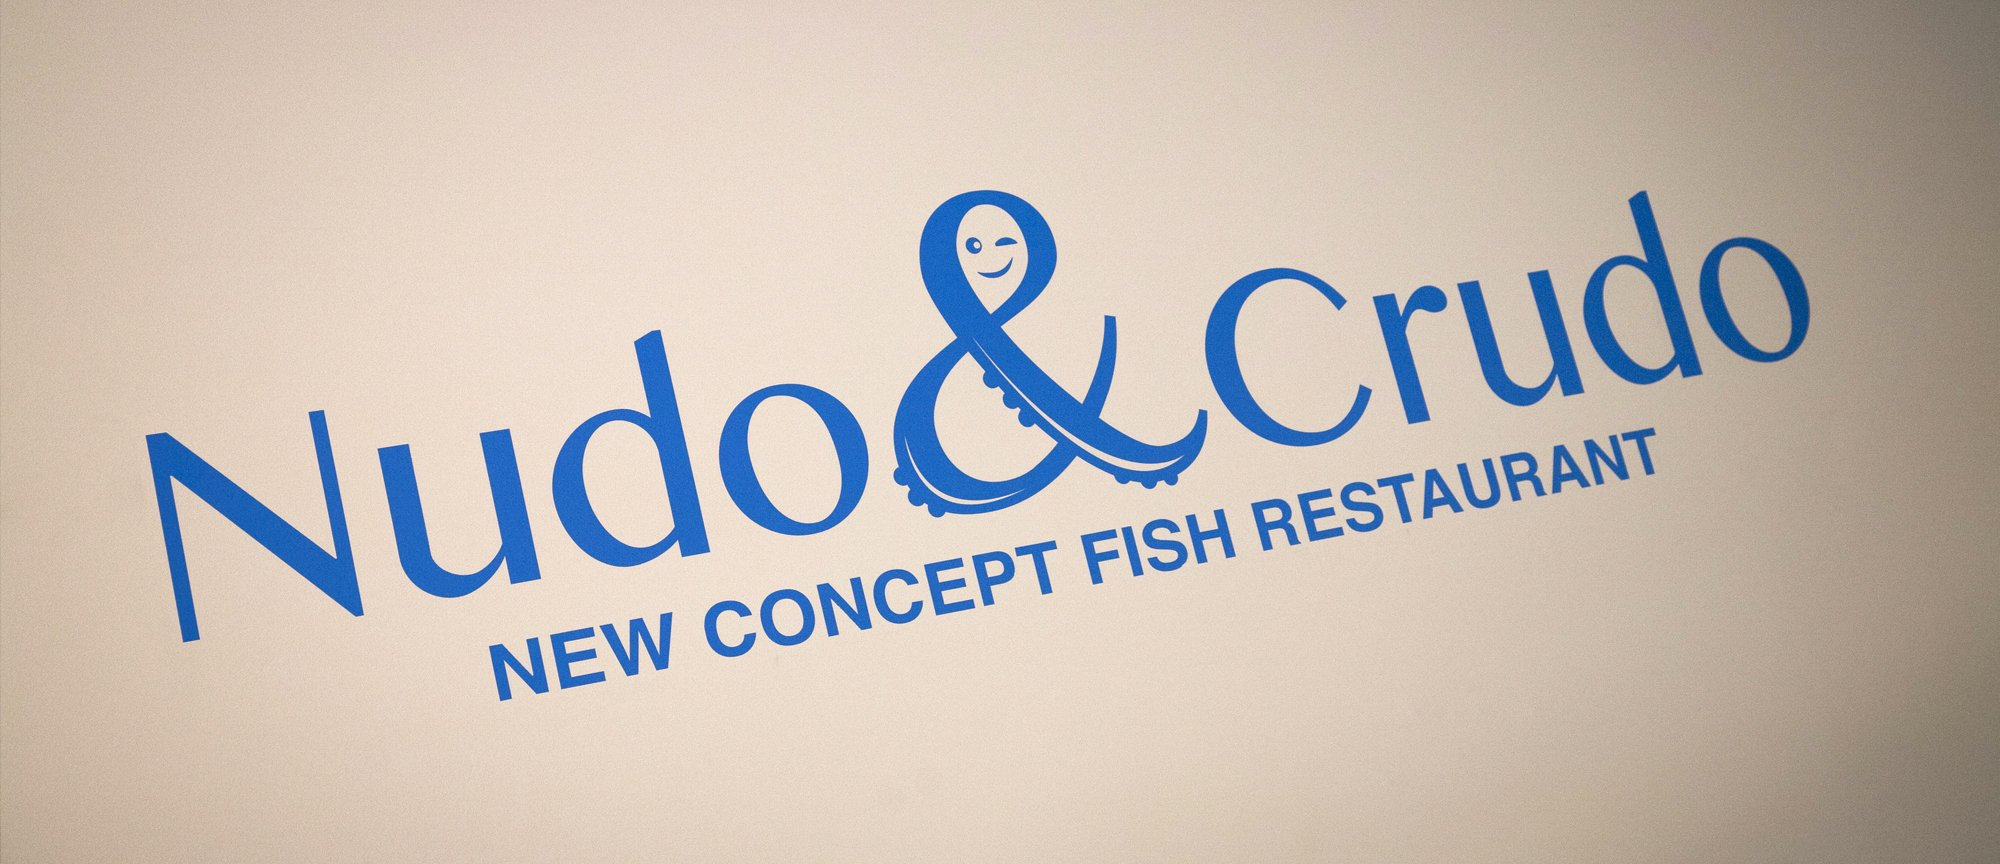 Nudo & Crudo new concept fish restaurant